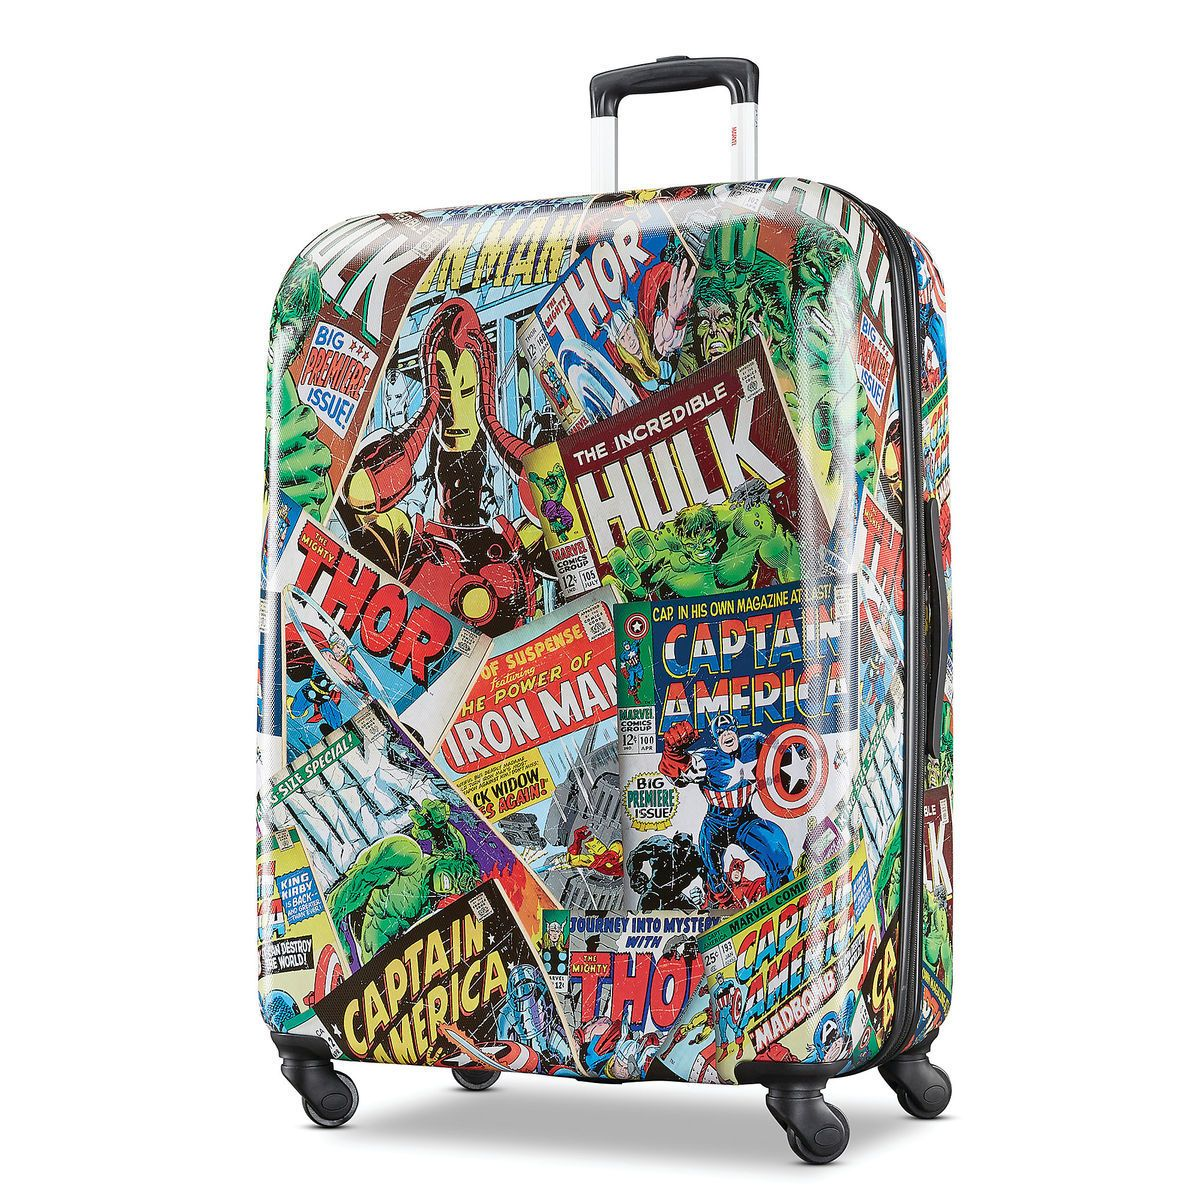 Thumbnail Image Of Marvel Comics Rolling Luggage By American Tourister Large 1 Marvel Comics American Tourister Marvel